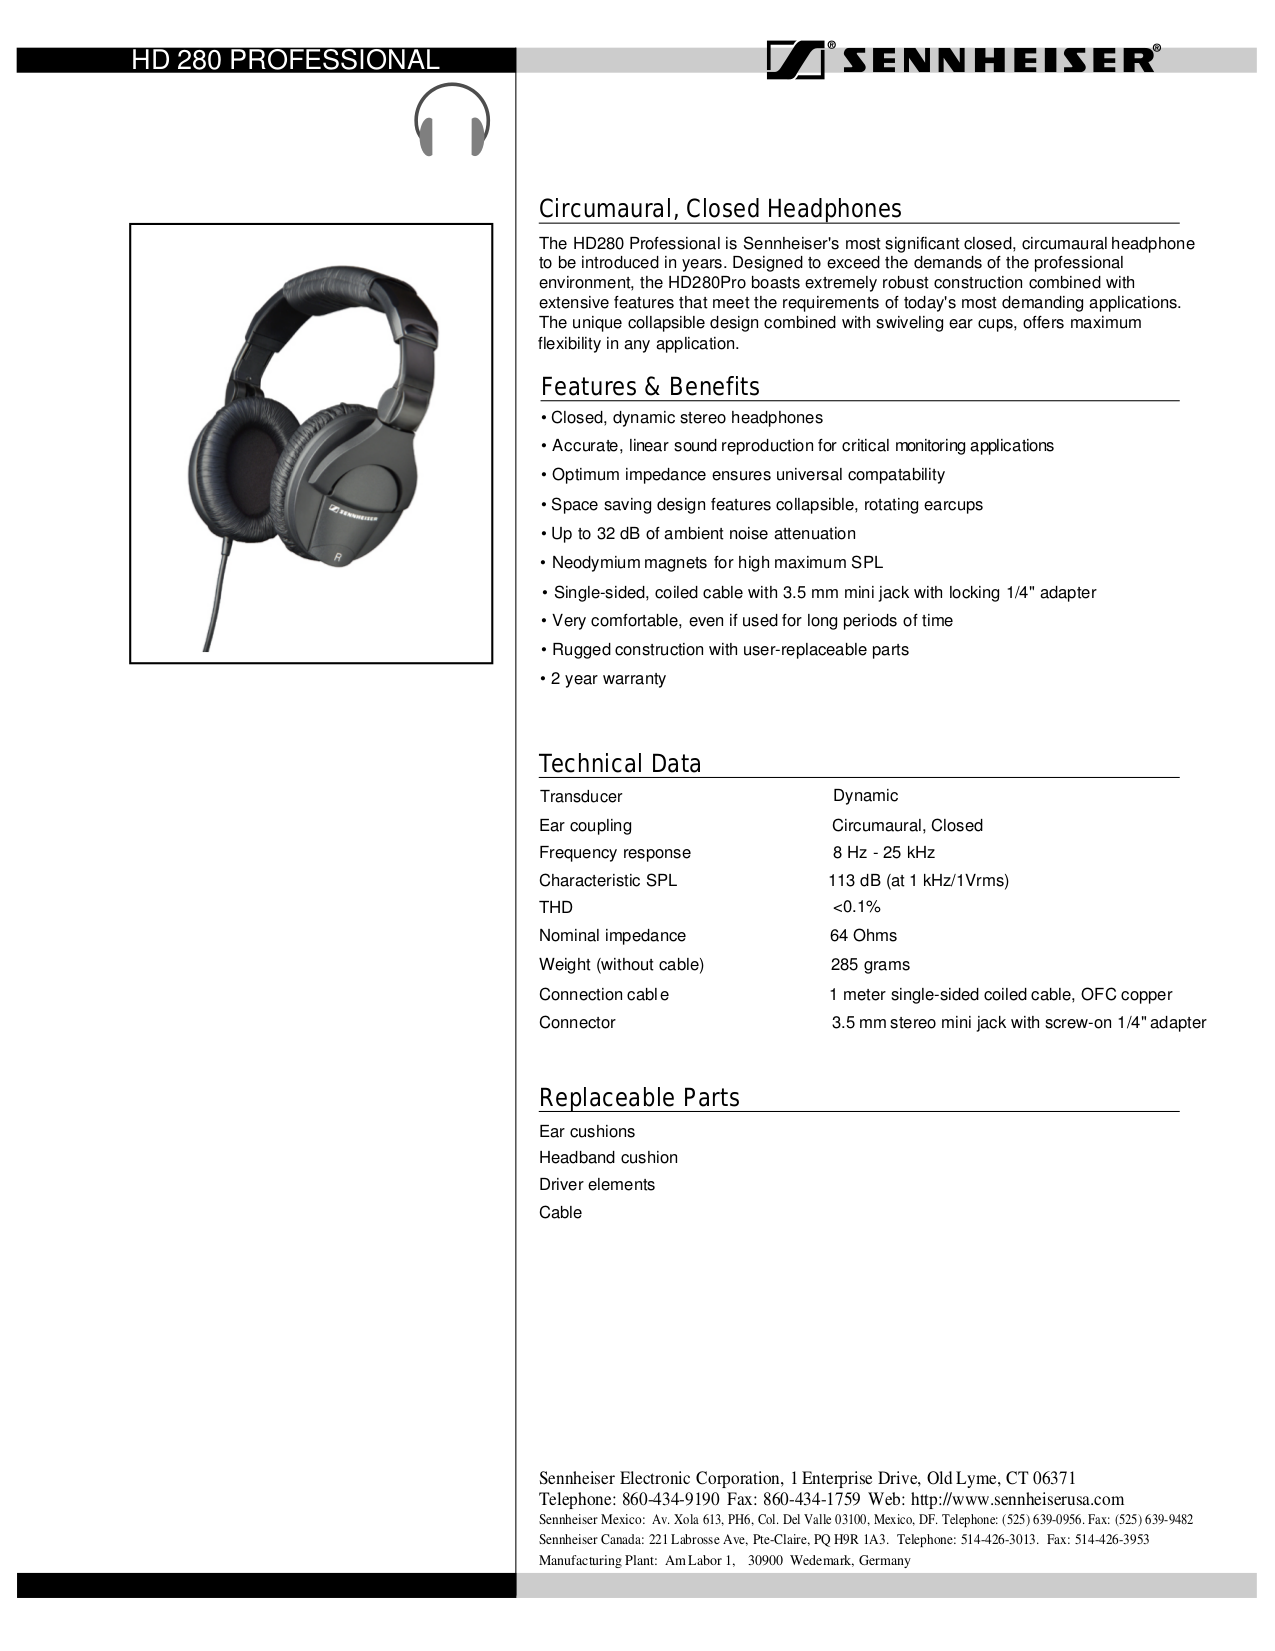 HD280 8af579f45bfb1339d723d3a2bc1af8df.pdf 0 download free pdf for sennheiser hd 280 pro headphone manual sennheiser hd 280 wiring diagram at edmiracle.co